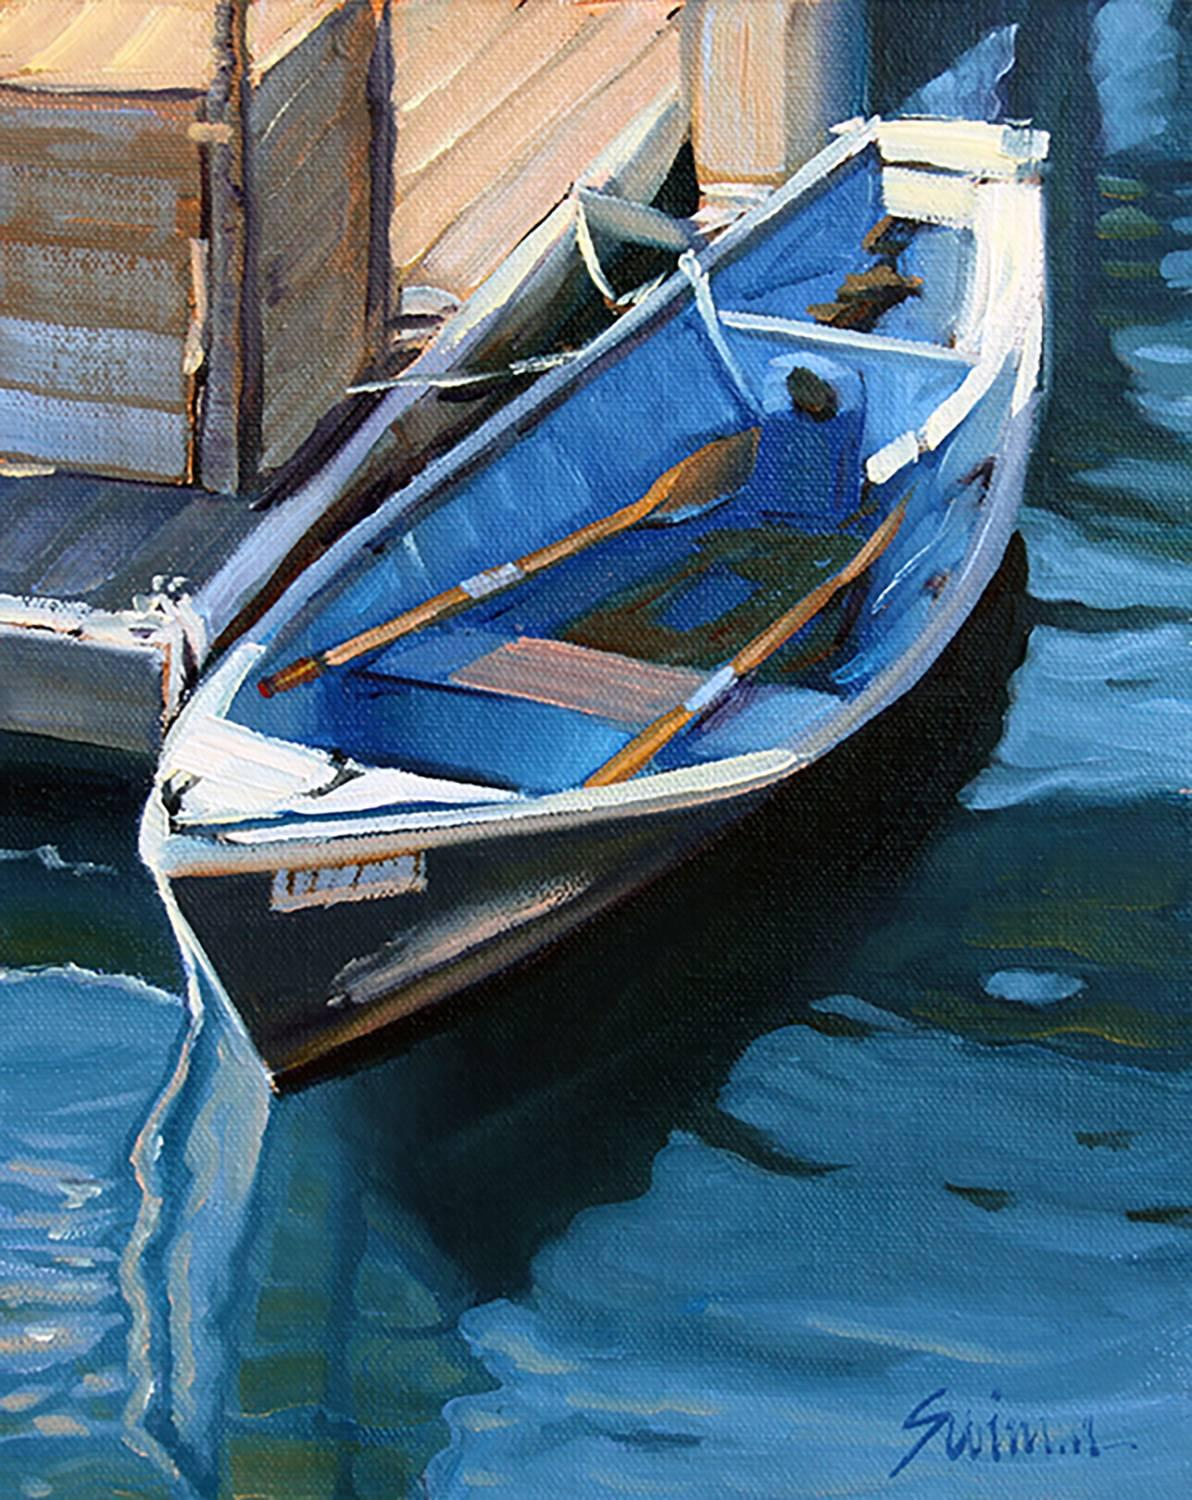 """""""Morro Bay Landing,""""   Oil of Boat and shimmering water by Realist Tom Swimm"""